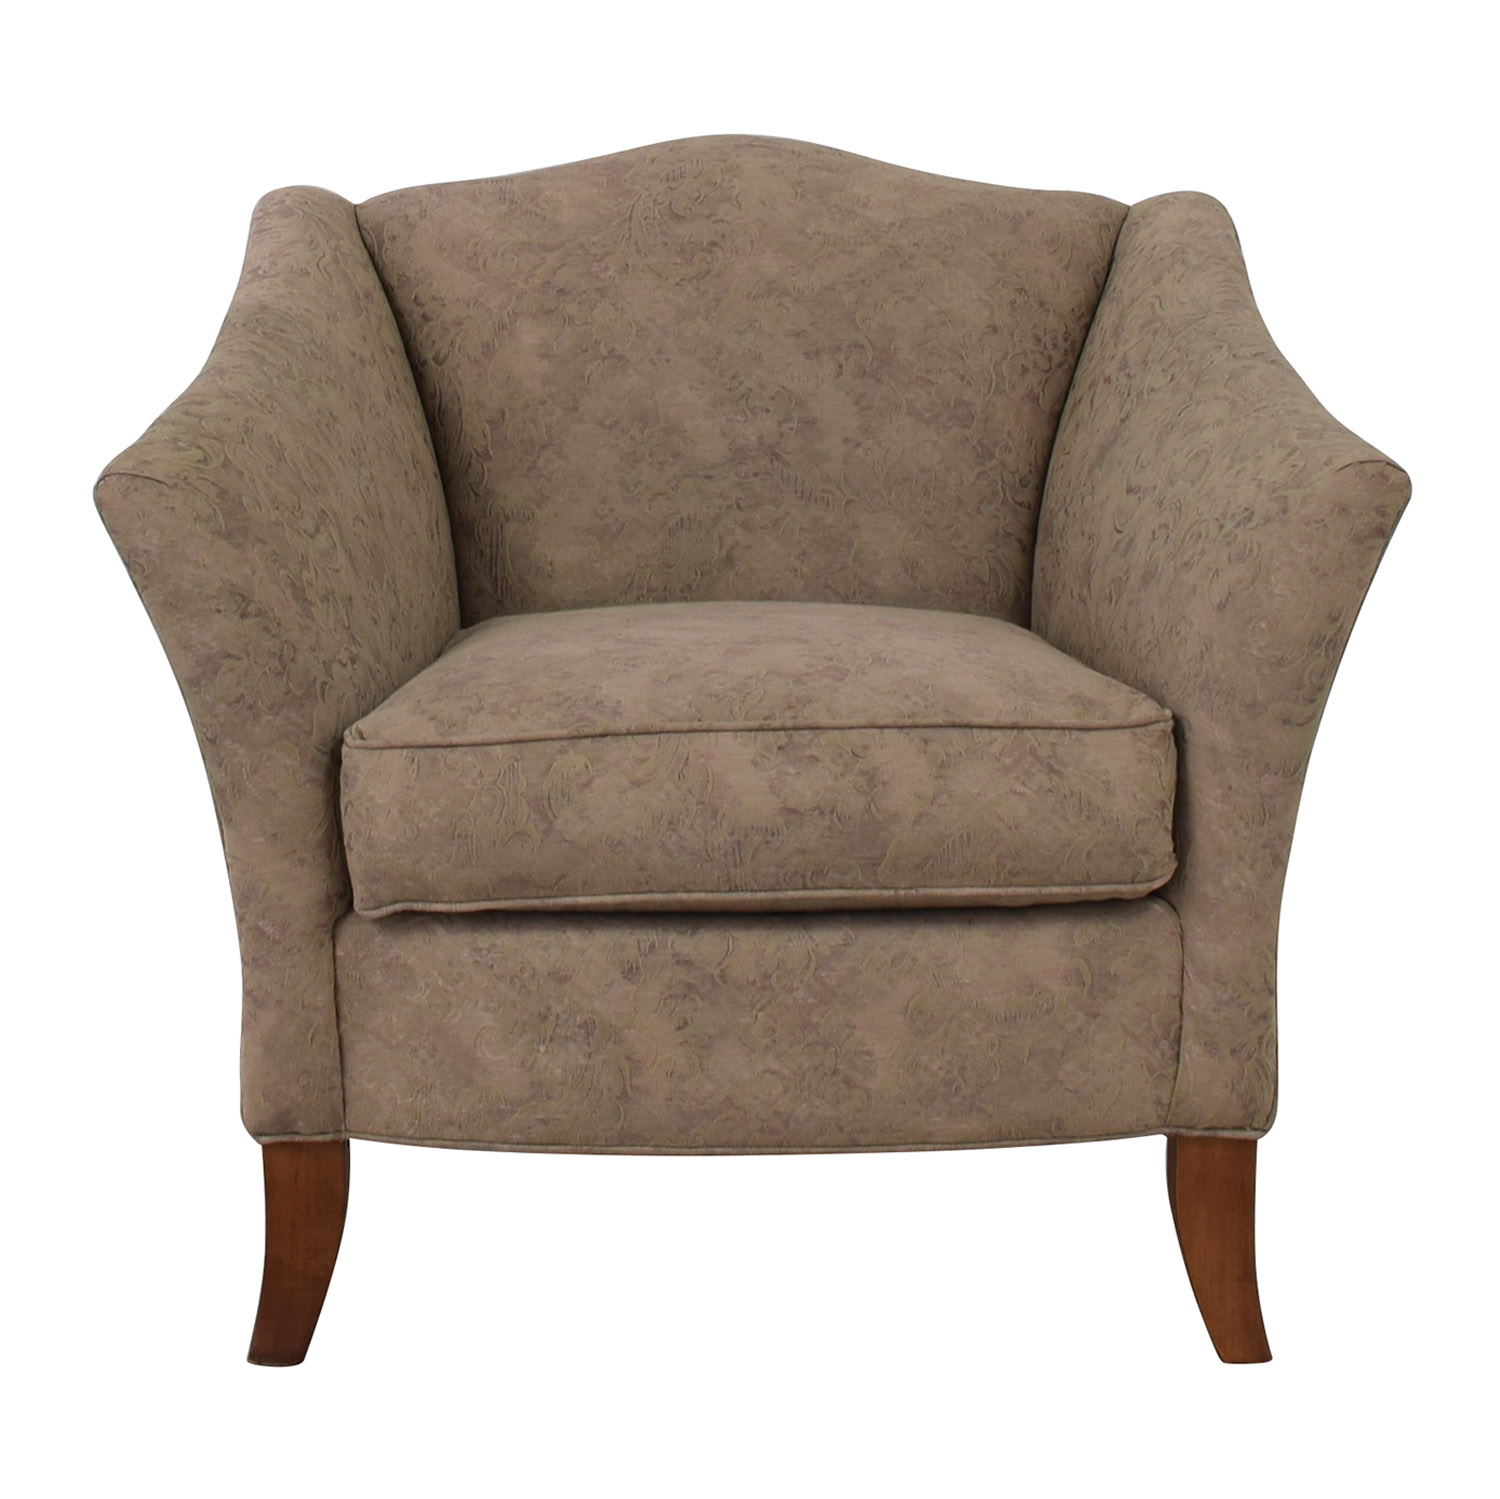 Thomasville Thomasville Grey Accent Chair price